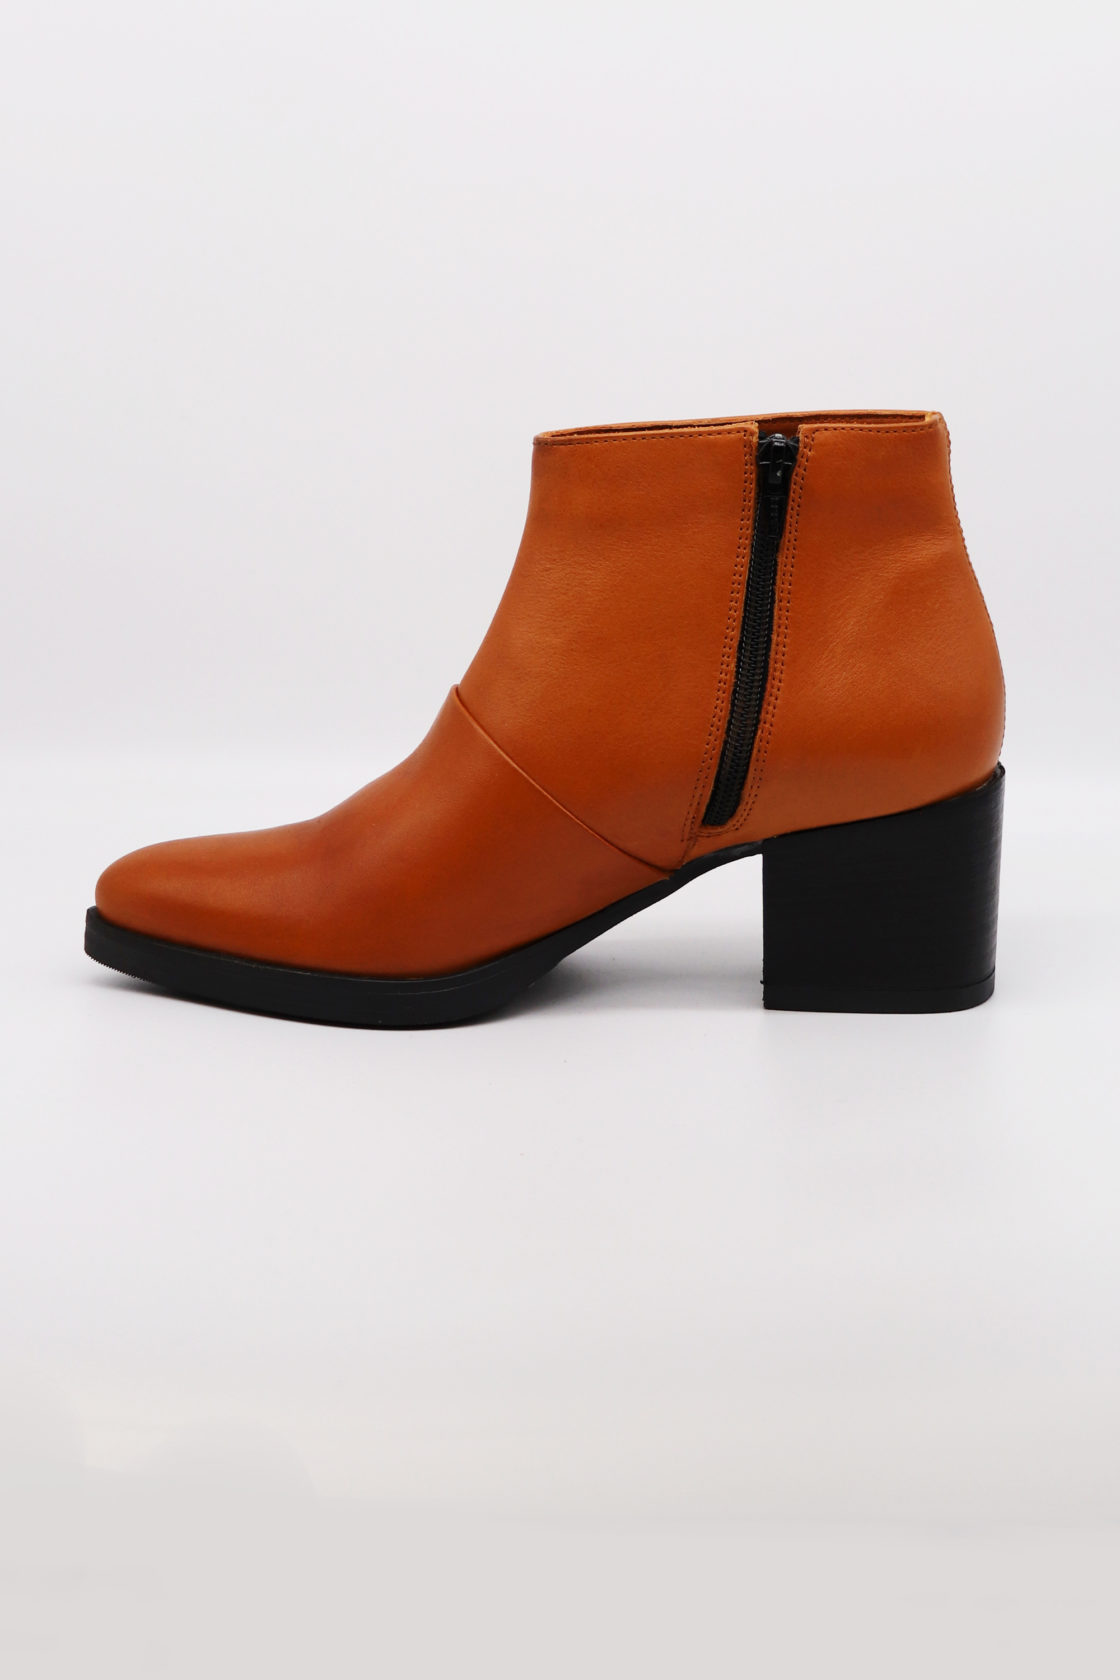 Roberta Organic Fashion Werner Ankle Boots Cognac 2